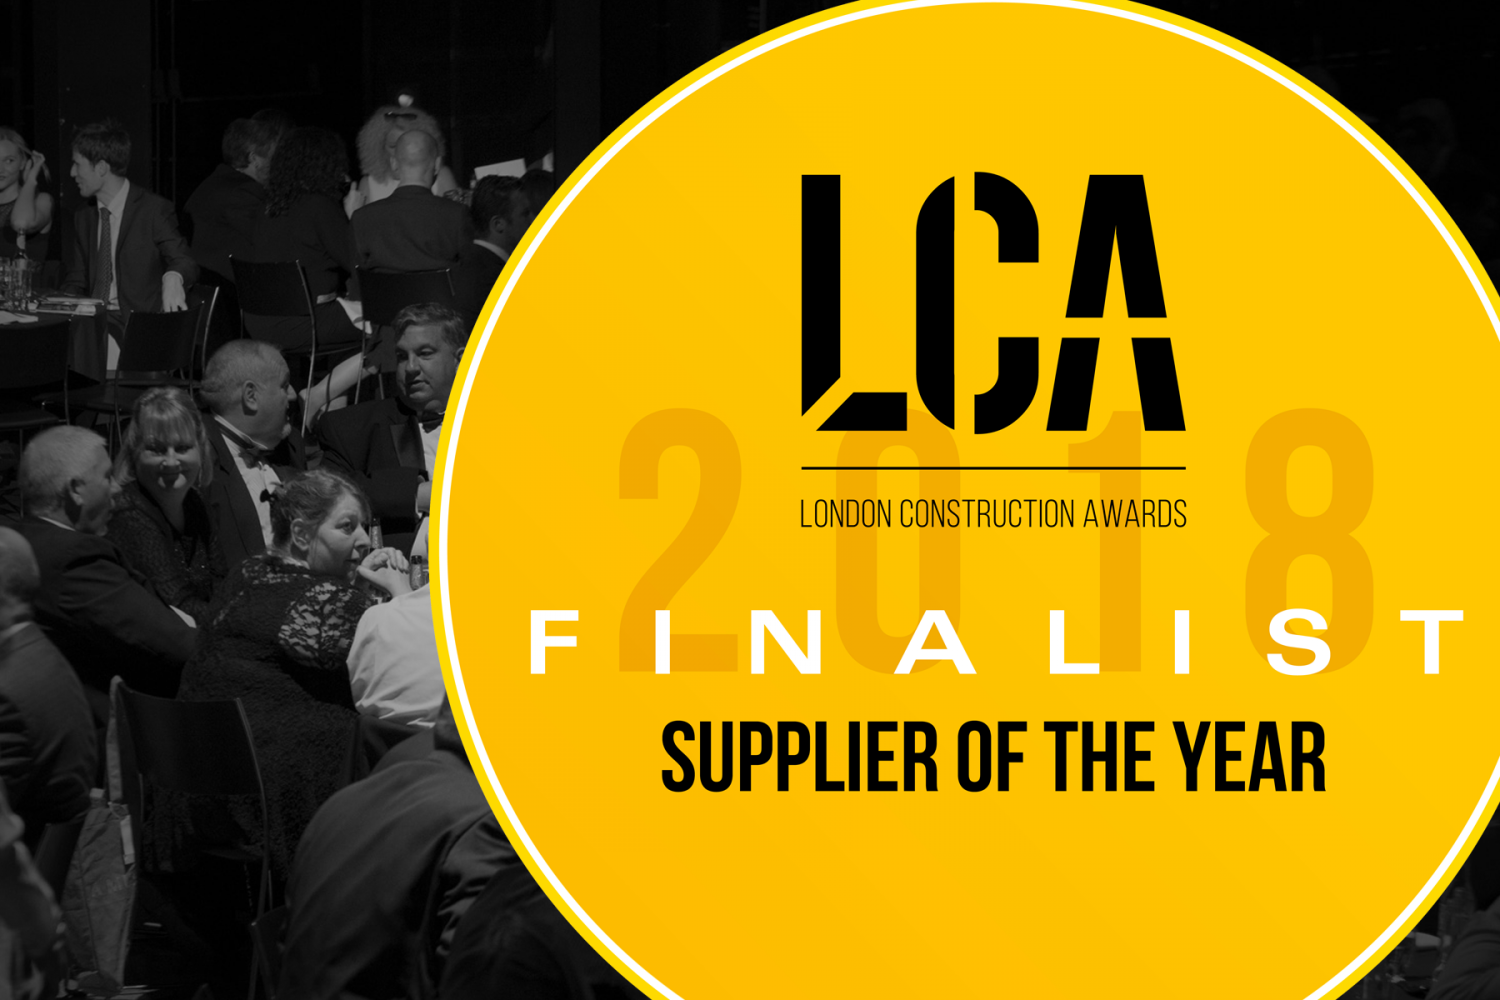 Lucas Shortlisted for the London Construction Awards 2018